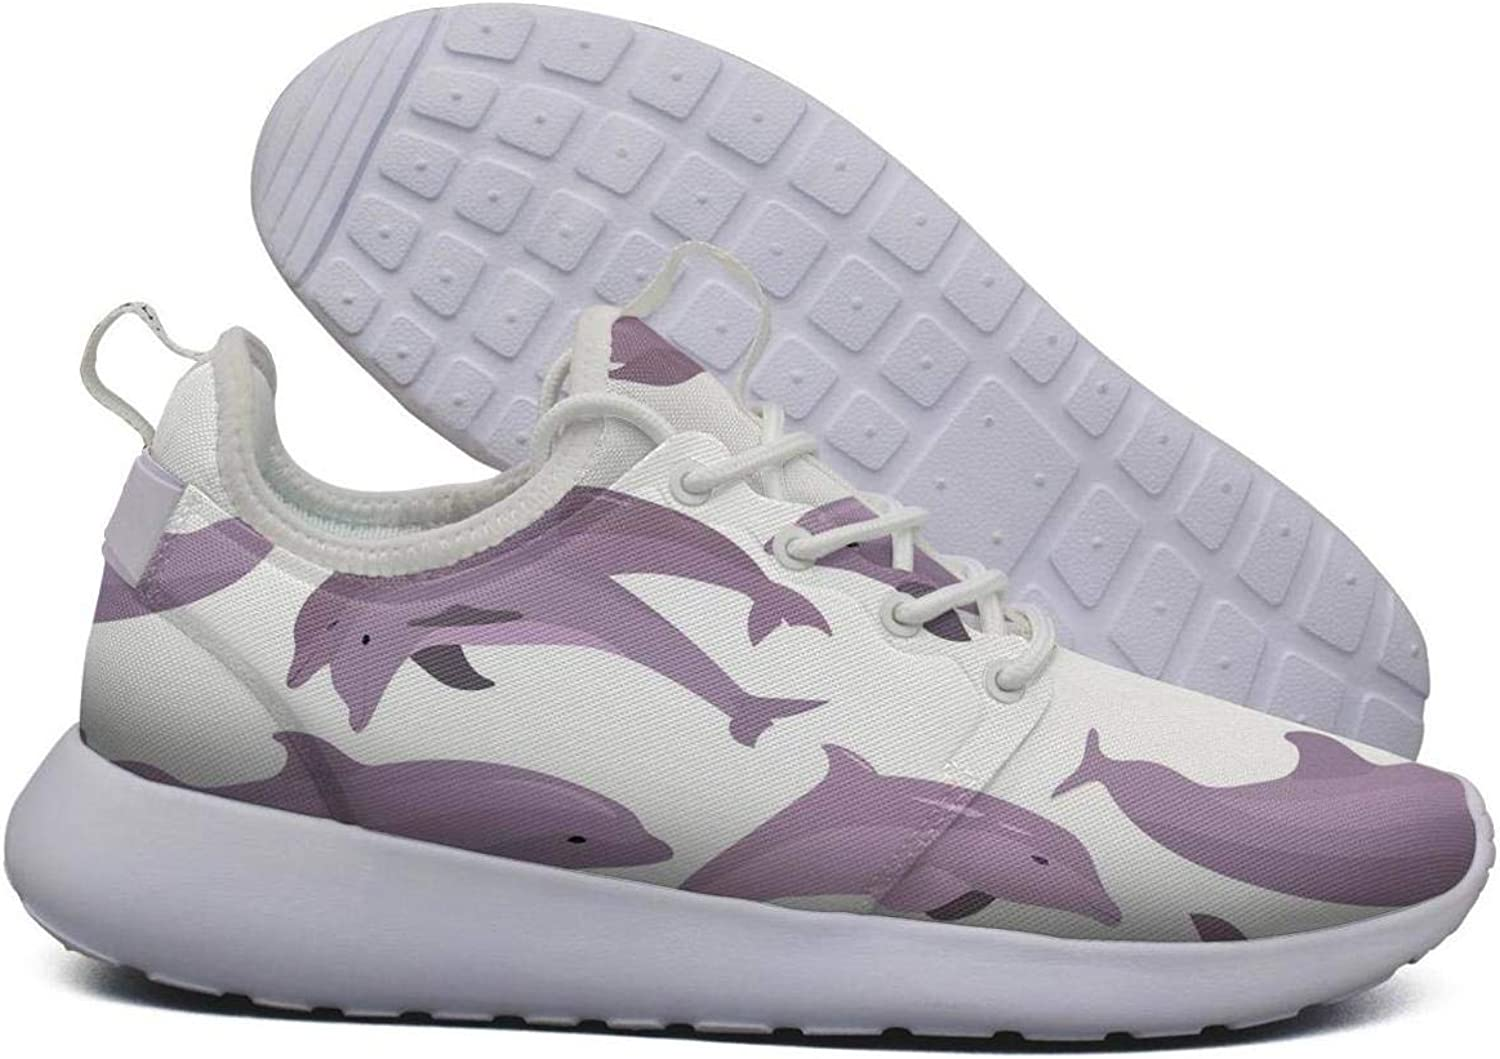 Hoohle Sports Womens Dolphin Purple Flex Mesh Roshe 2 Lightweight Coll Cross-Country Running shoes